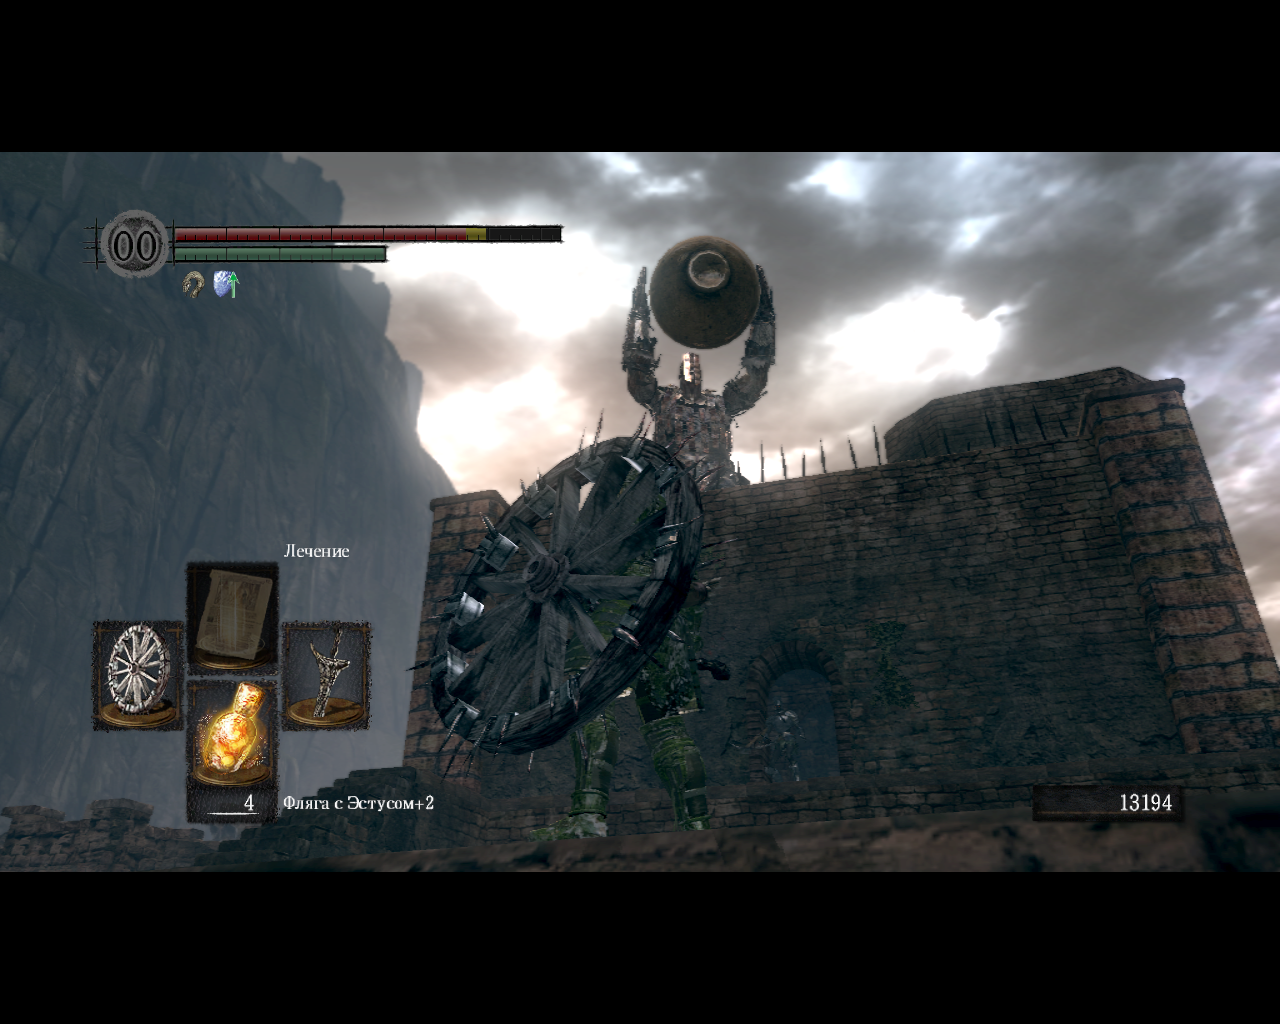 Dark Souls: Prepare to Die Edition Windows This giant drops exploding barrels  - proceed with caution!